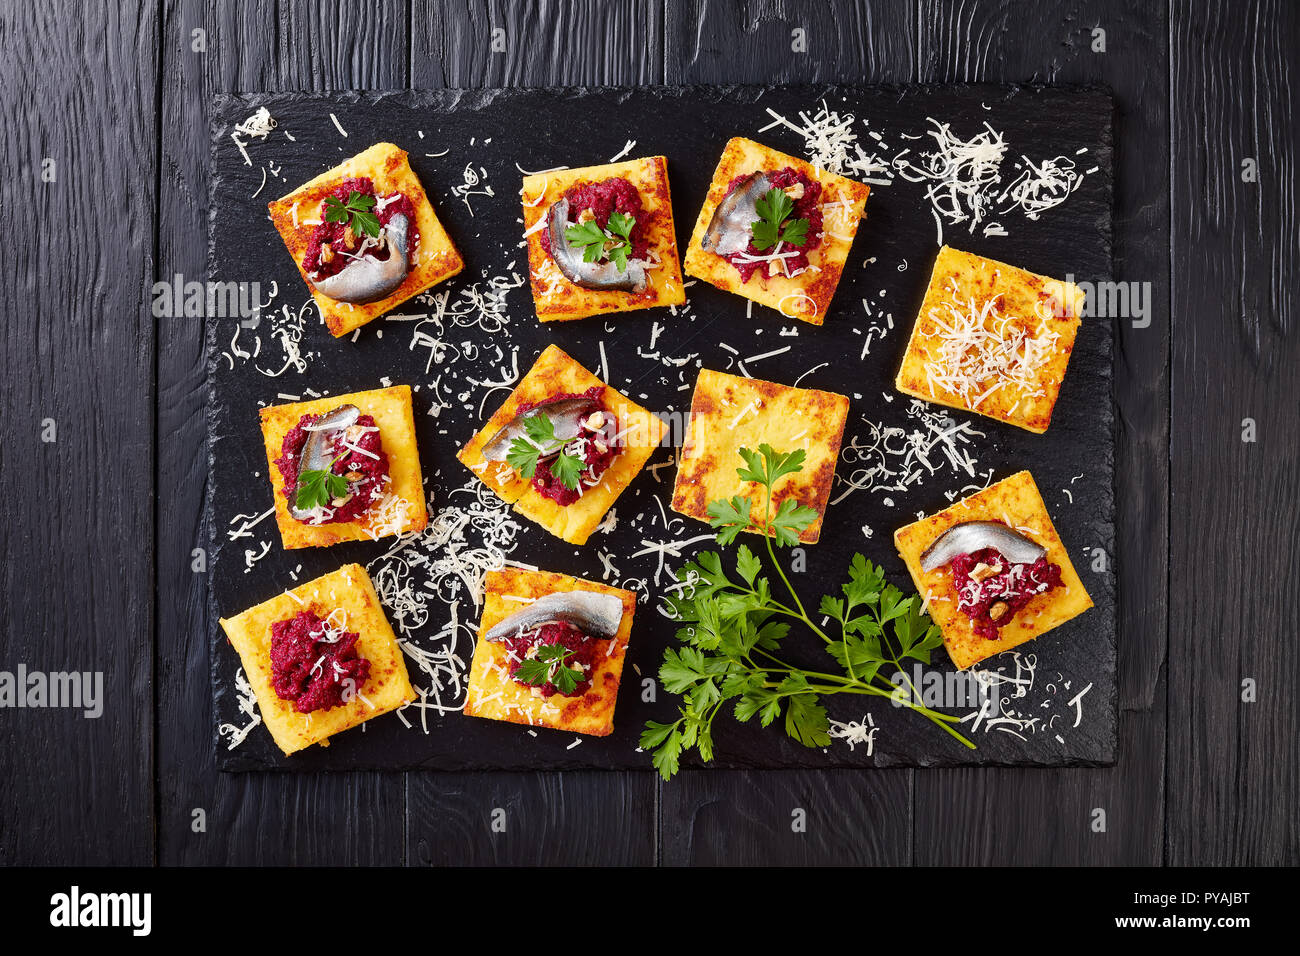 overhead view of portions of Polenta Squares with Creamy beetroot pate, topped with anchovies and parsley served on a black stone tray on a wooden tab - Stock Image